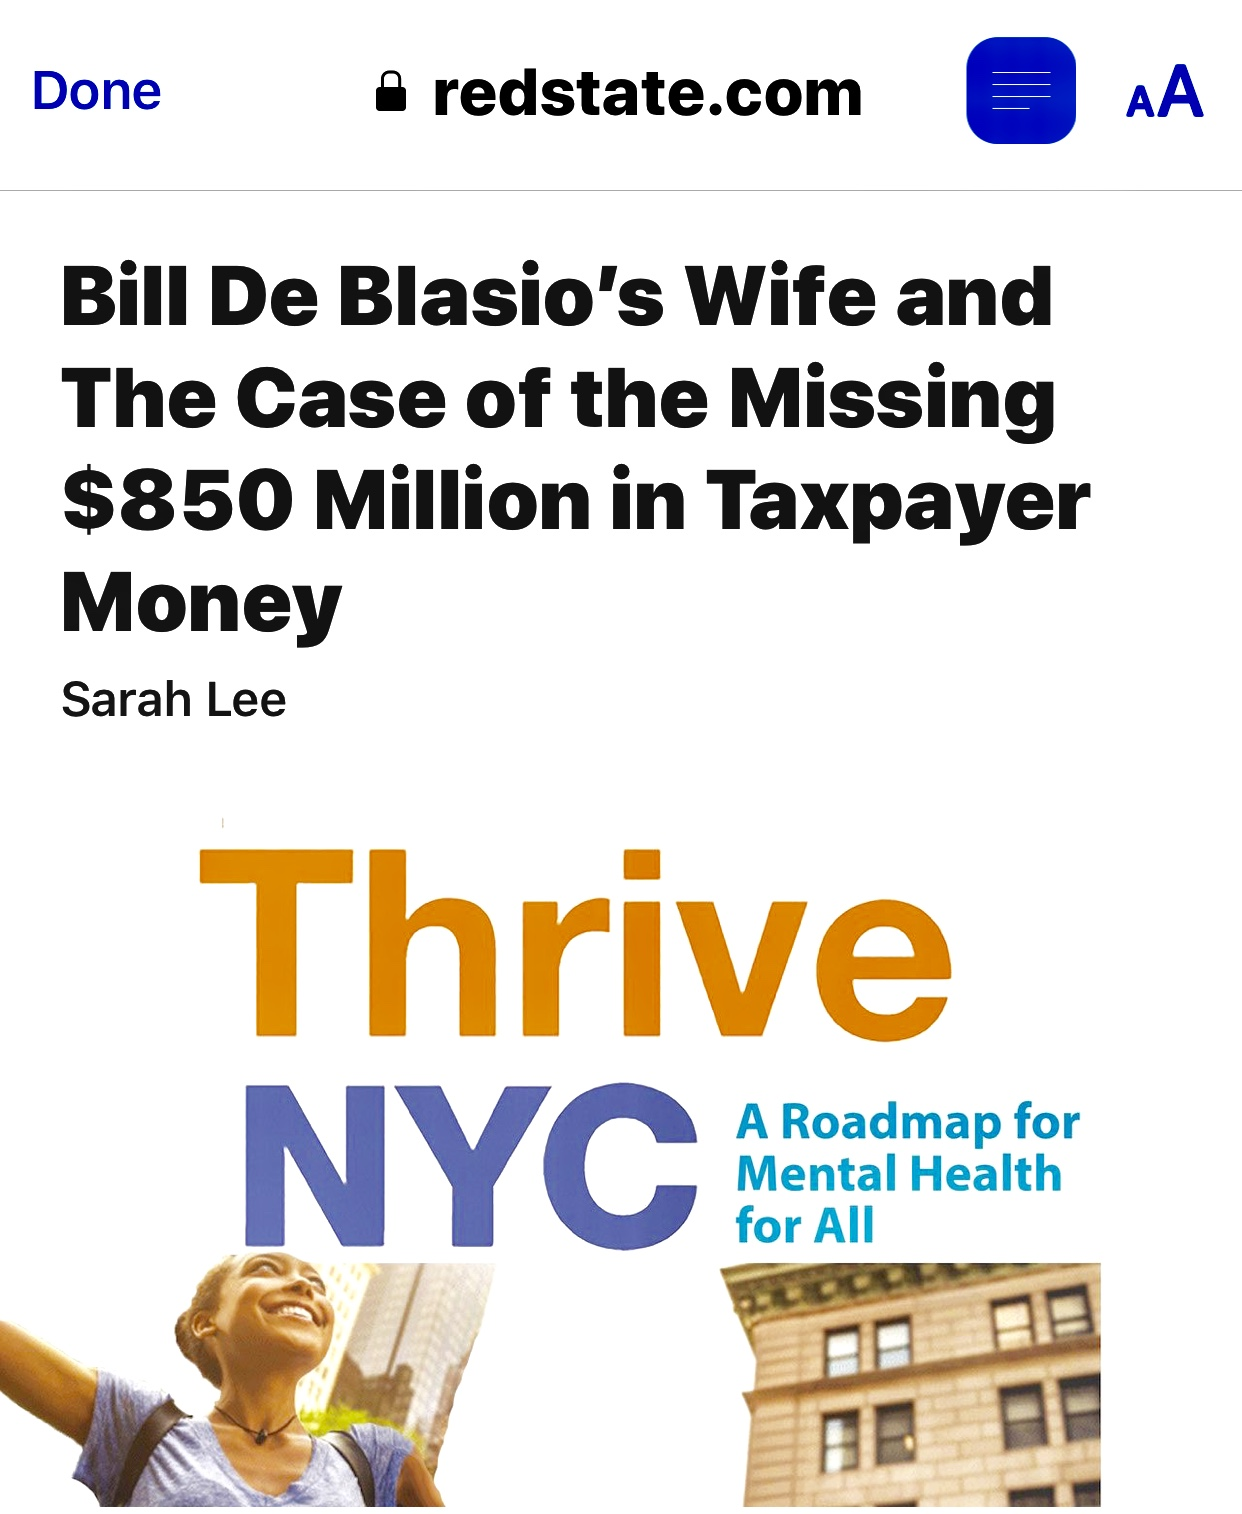 ‪De Blasio's Wife & The Missing $850 Million in Taxpayer Money‬ 973 Views